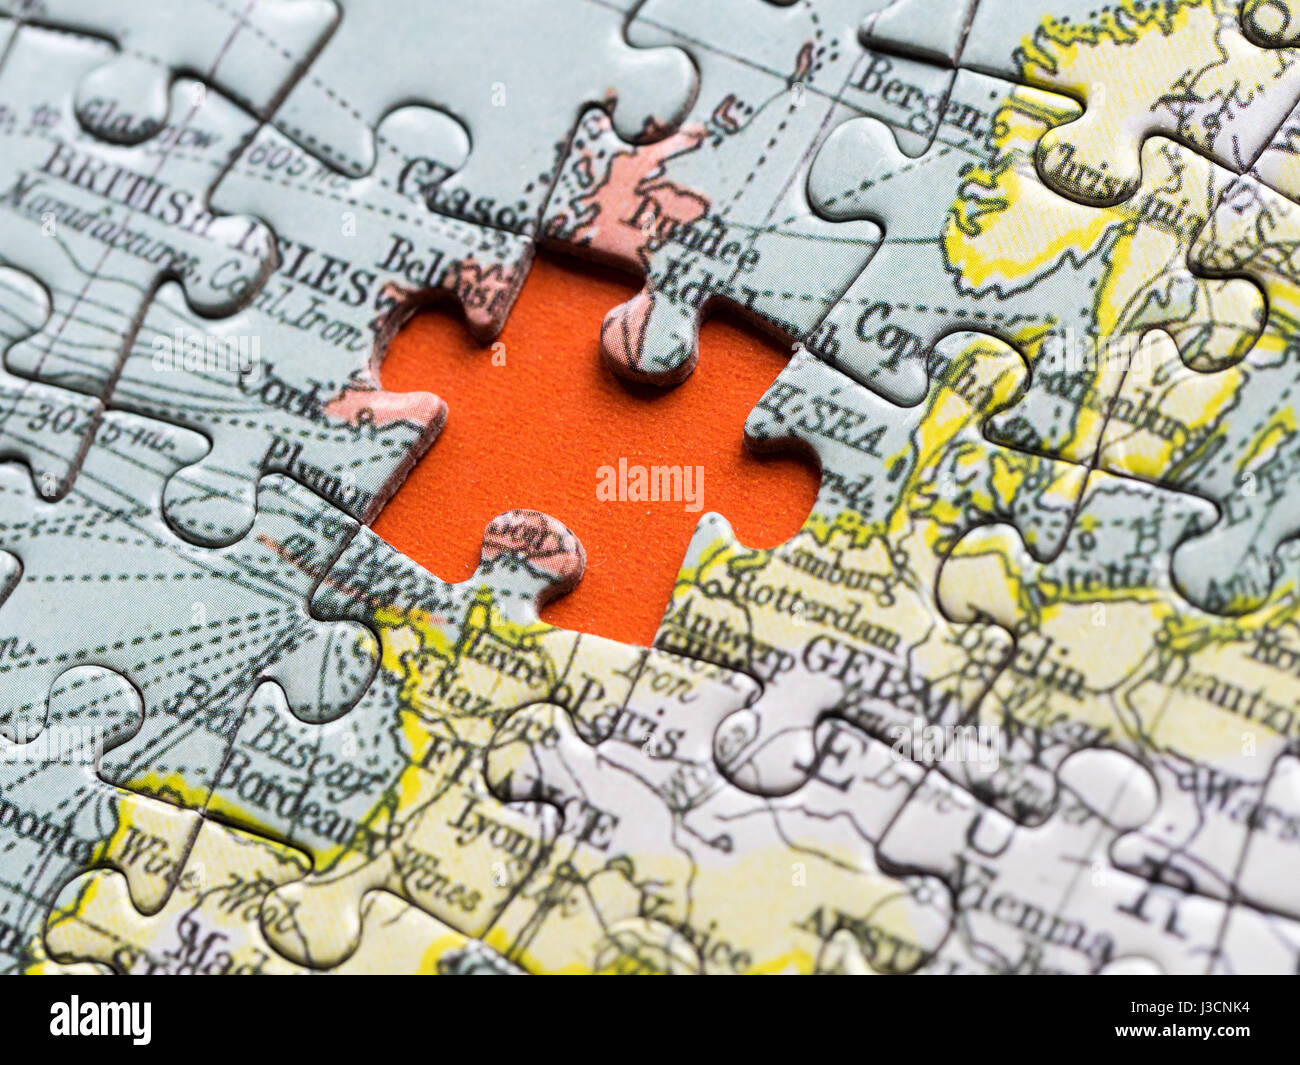 Uk map jigsaw stock photos uk map jigsaw stock images alamy brexit gap uk jigsaw piece missing from map of europe stock image gumiabroncs Gallery